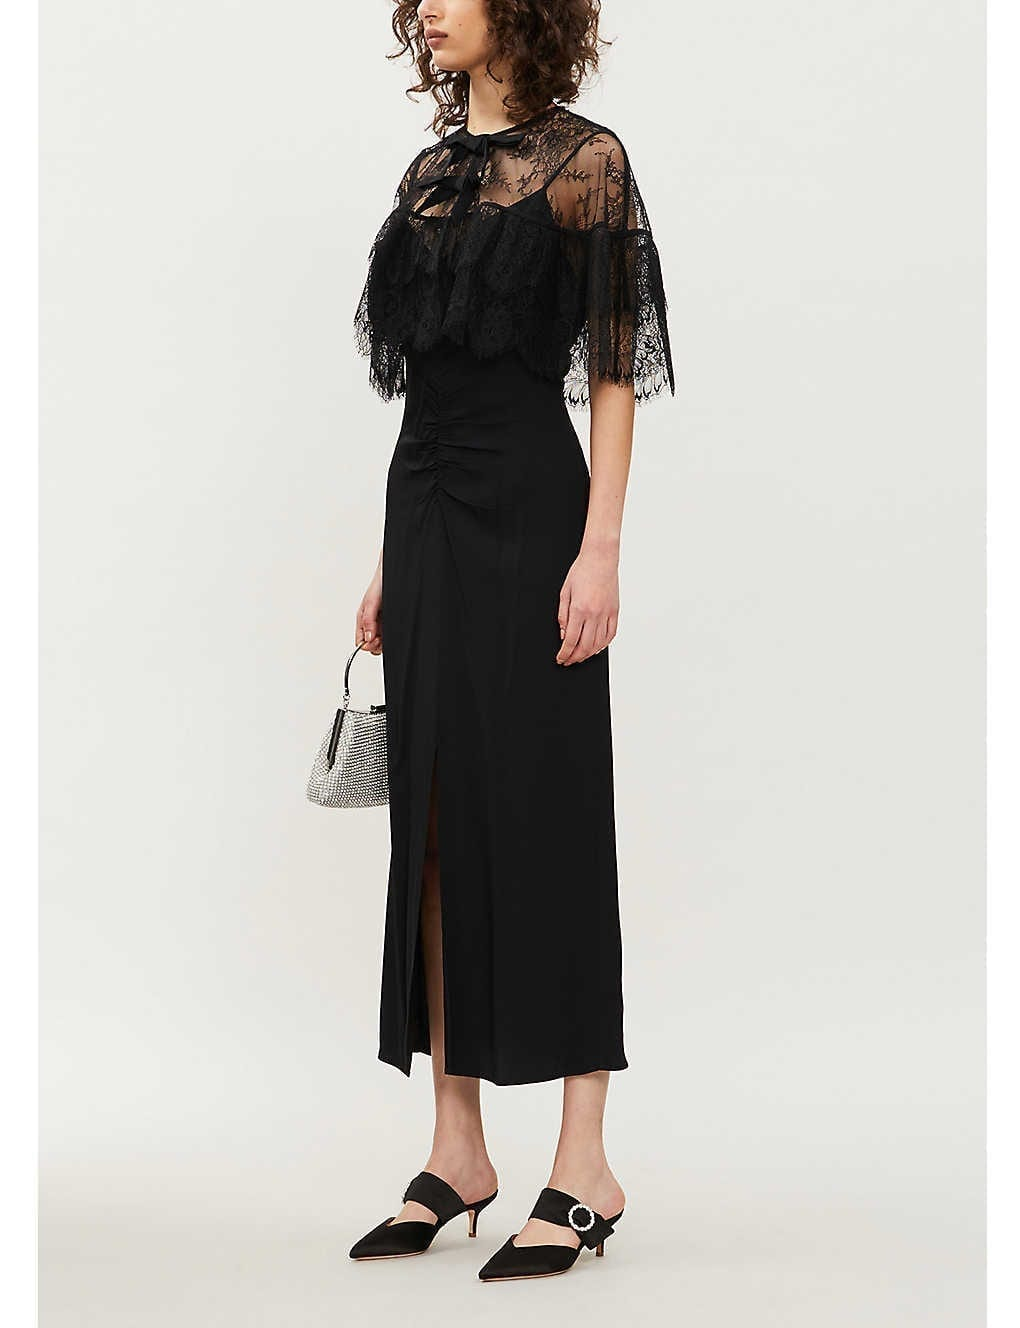 SELF-PORTRAIT Lace Cape Crepe Midi Dress